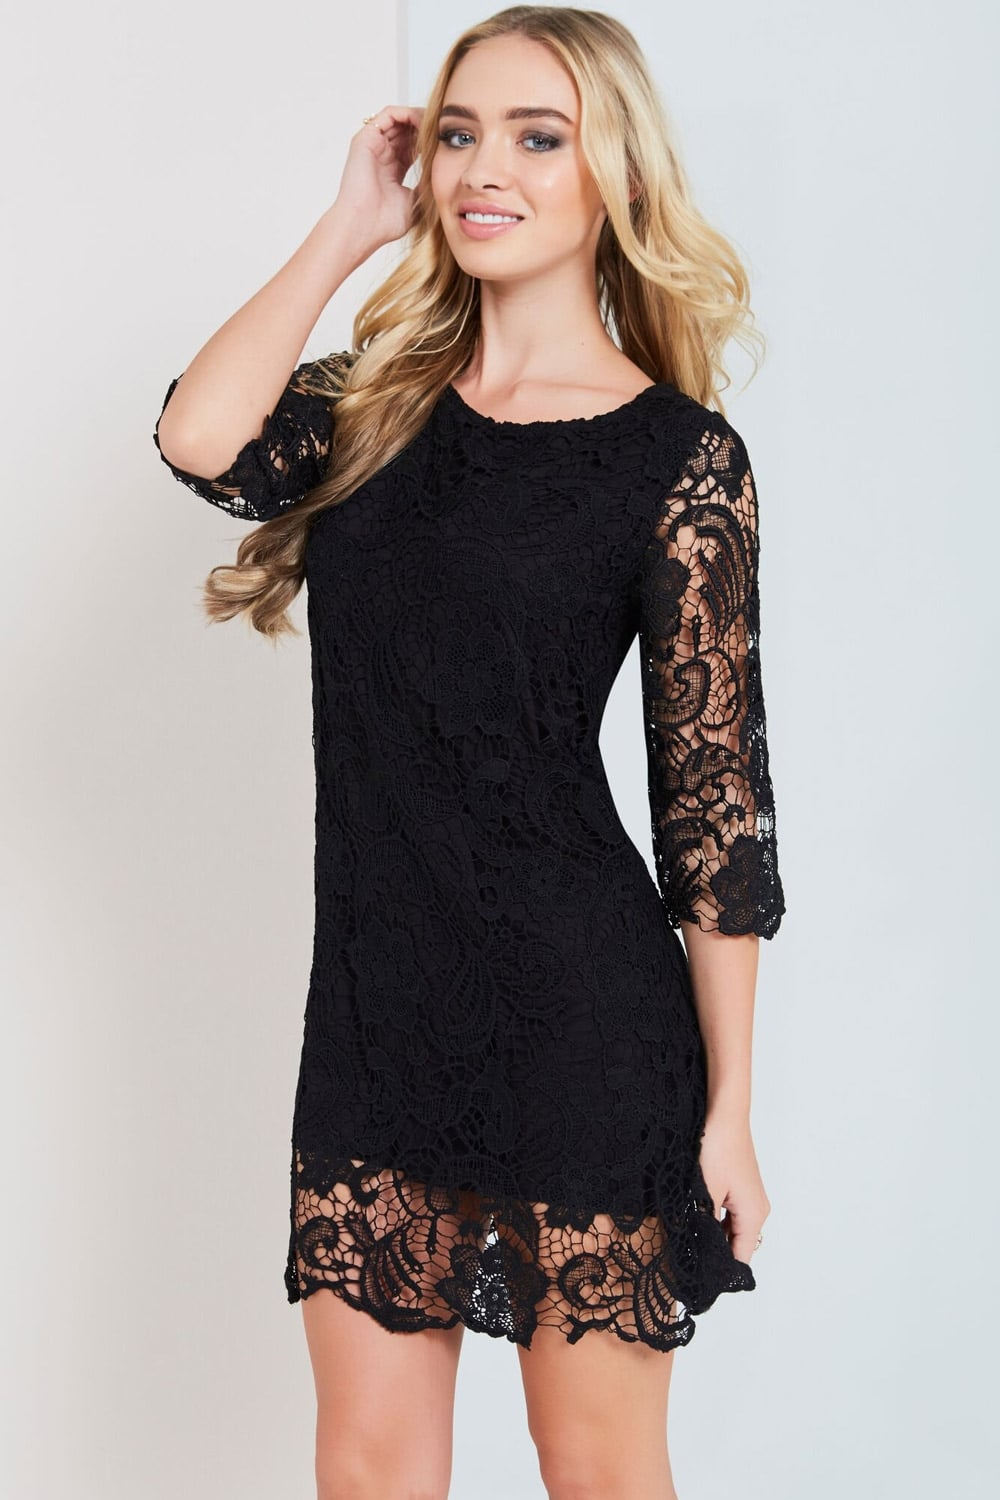 c9a2f35926 Paper Dolls Black Crochet Lace Bodycon Dress - Paper Dolls from ...